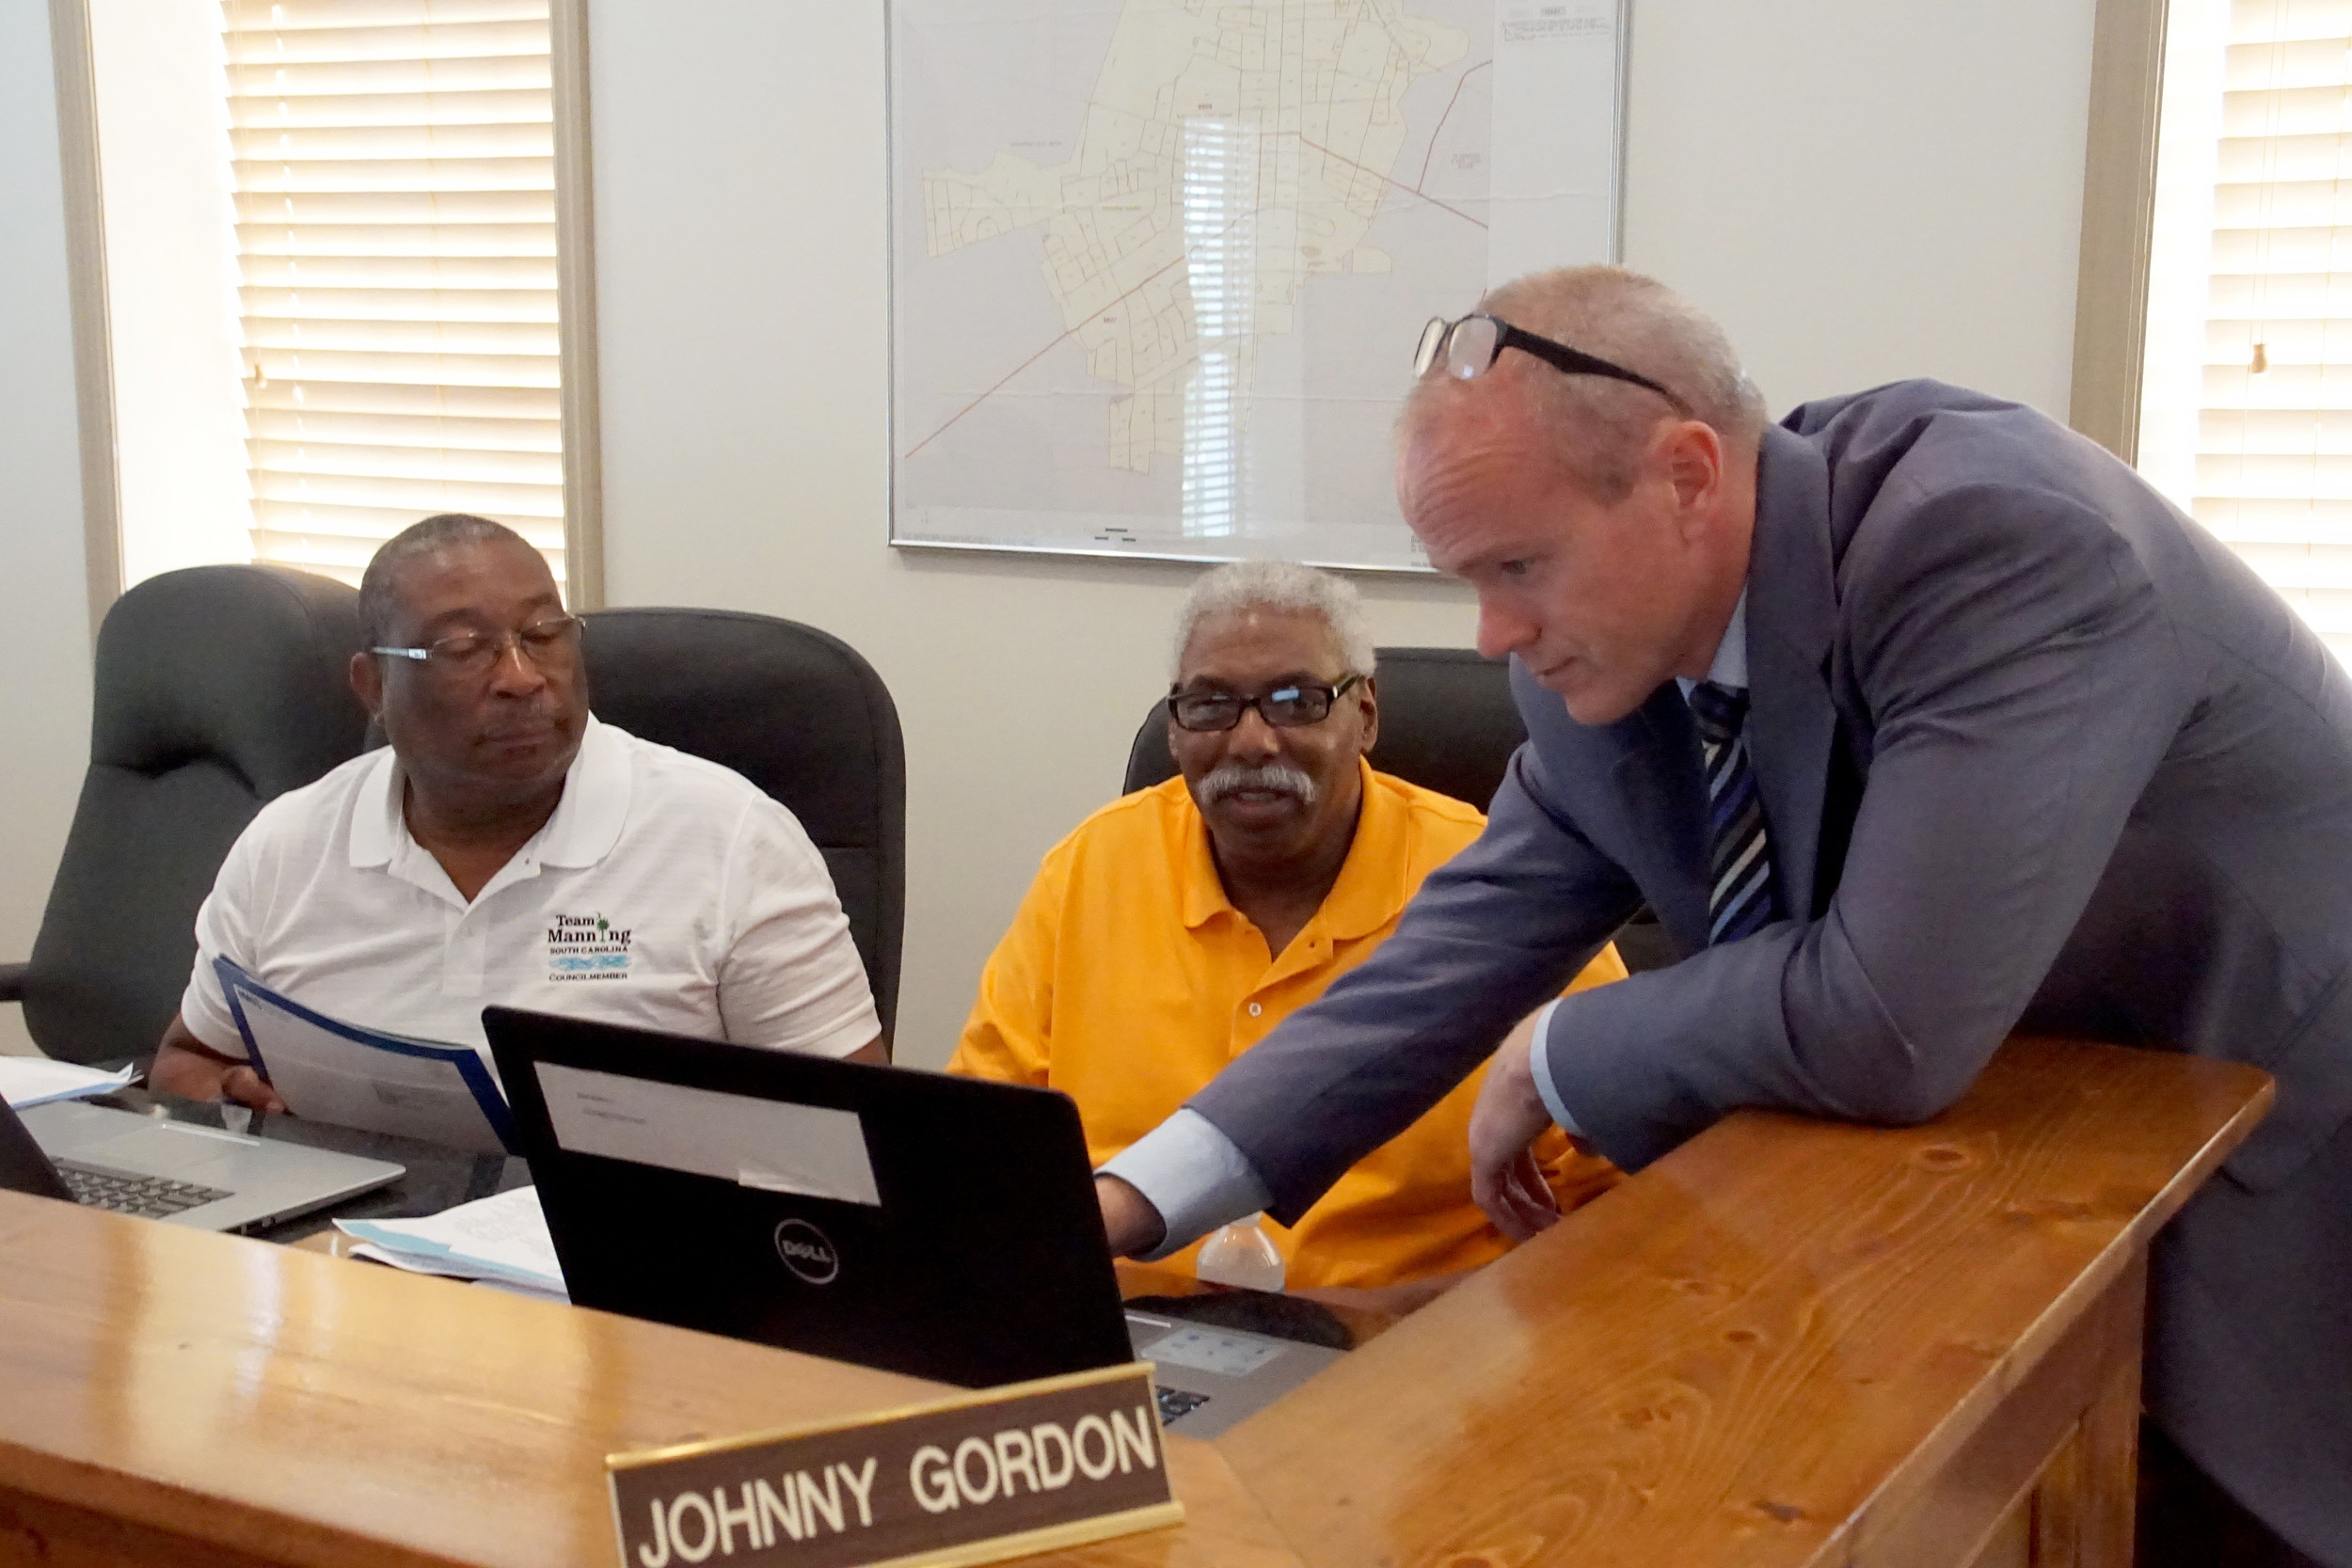 Manning City Council members Julius Dukes and Johnny Gordon watch as City Administrator Scott Tanner points out something on Gordon's computer display at Manning City Hall during Monday's council meeting.